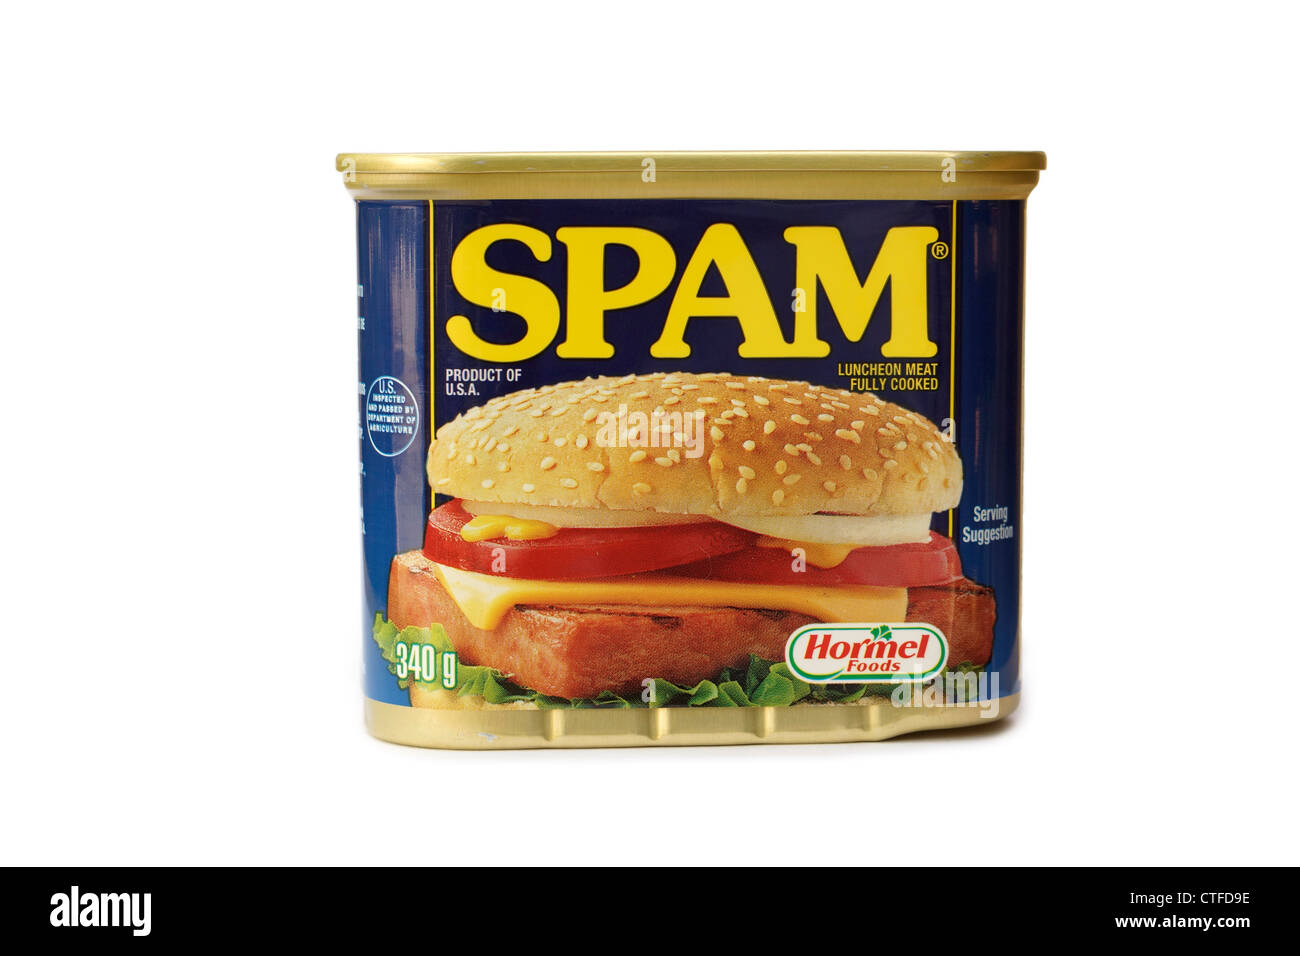 Spam - Stock Image